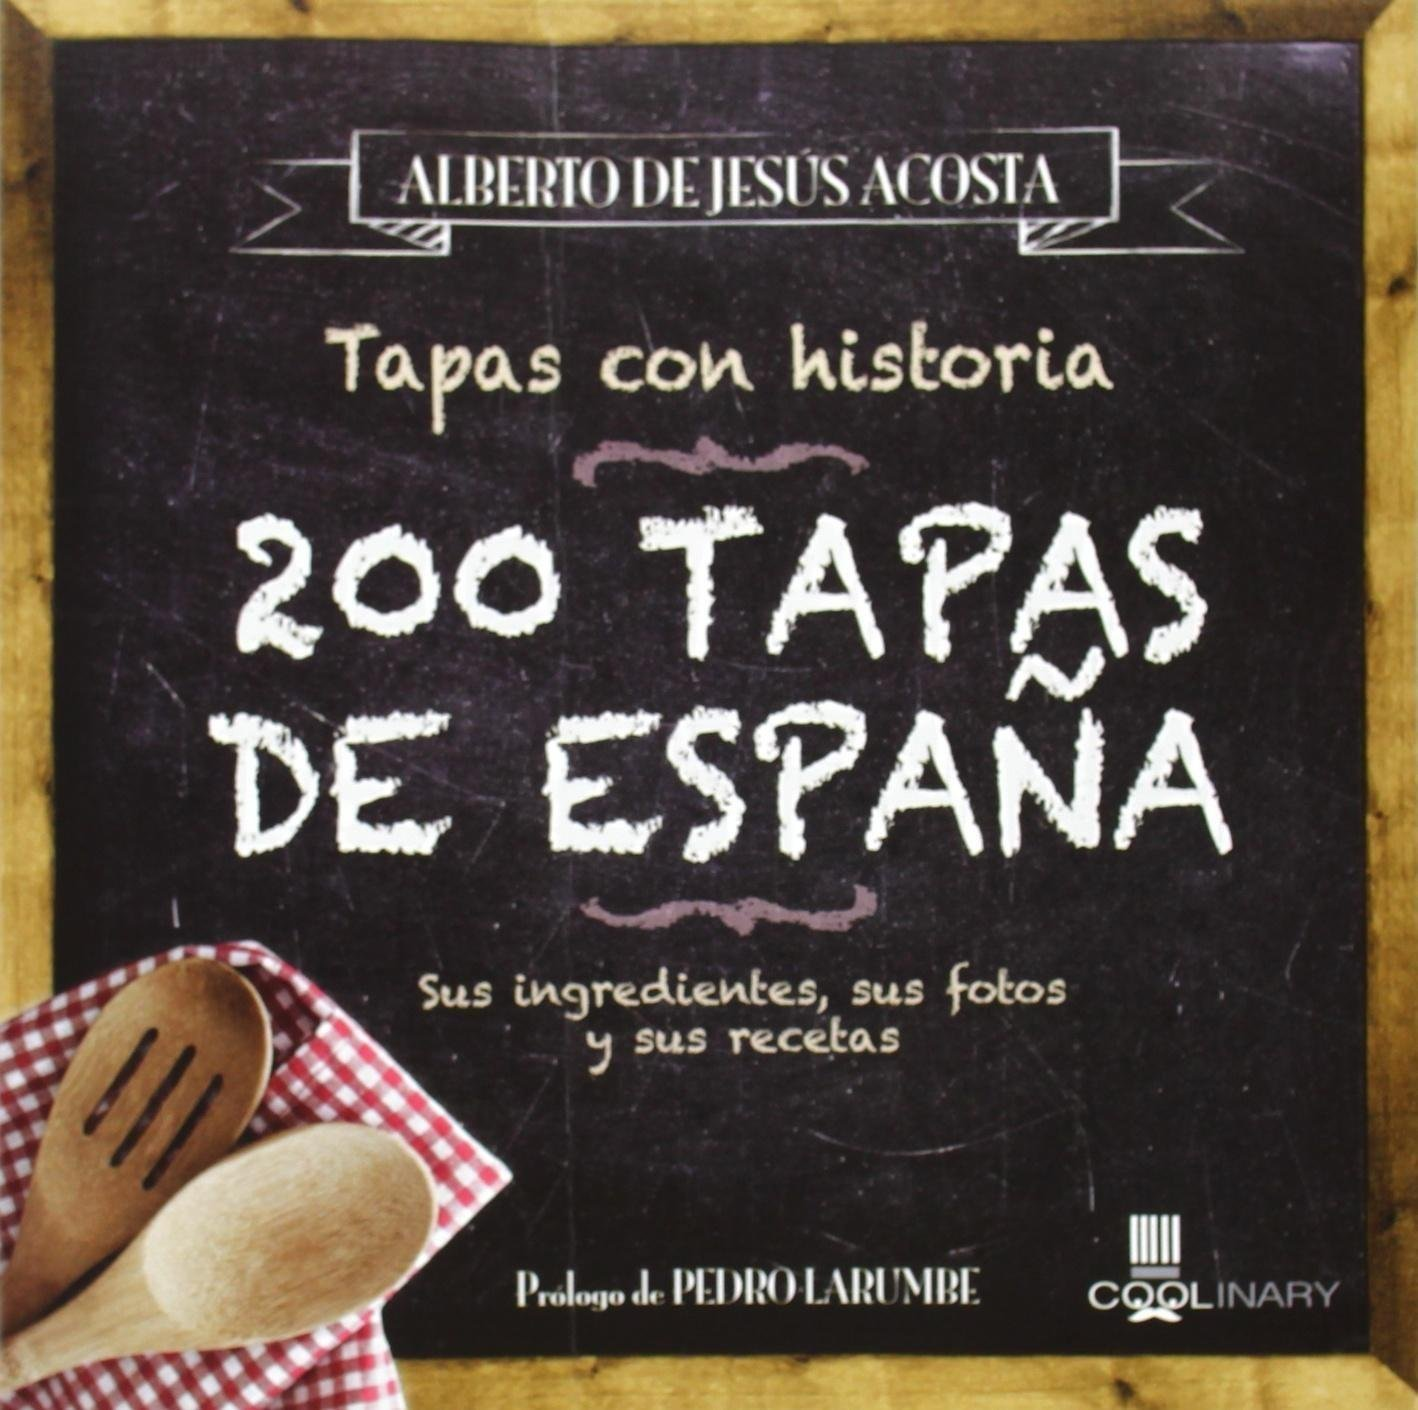 200 Tapas de España: Sus ingredientes, sus fotos y sus recetas (Coolinary) (Spanish Edition): Alberto de Jesus Acosta: 9788483565100: Amazon.com: Books